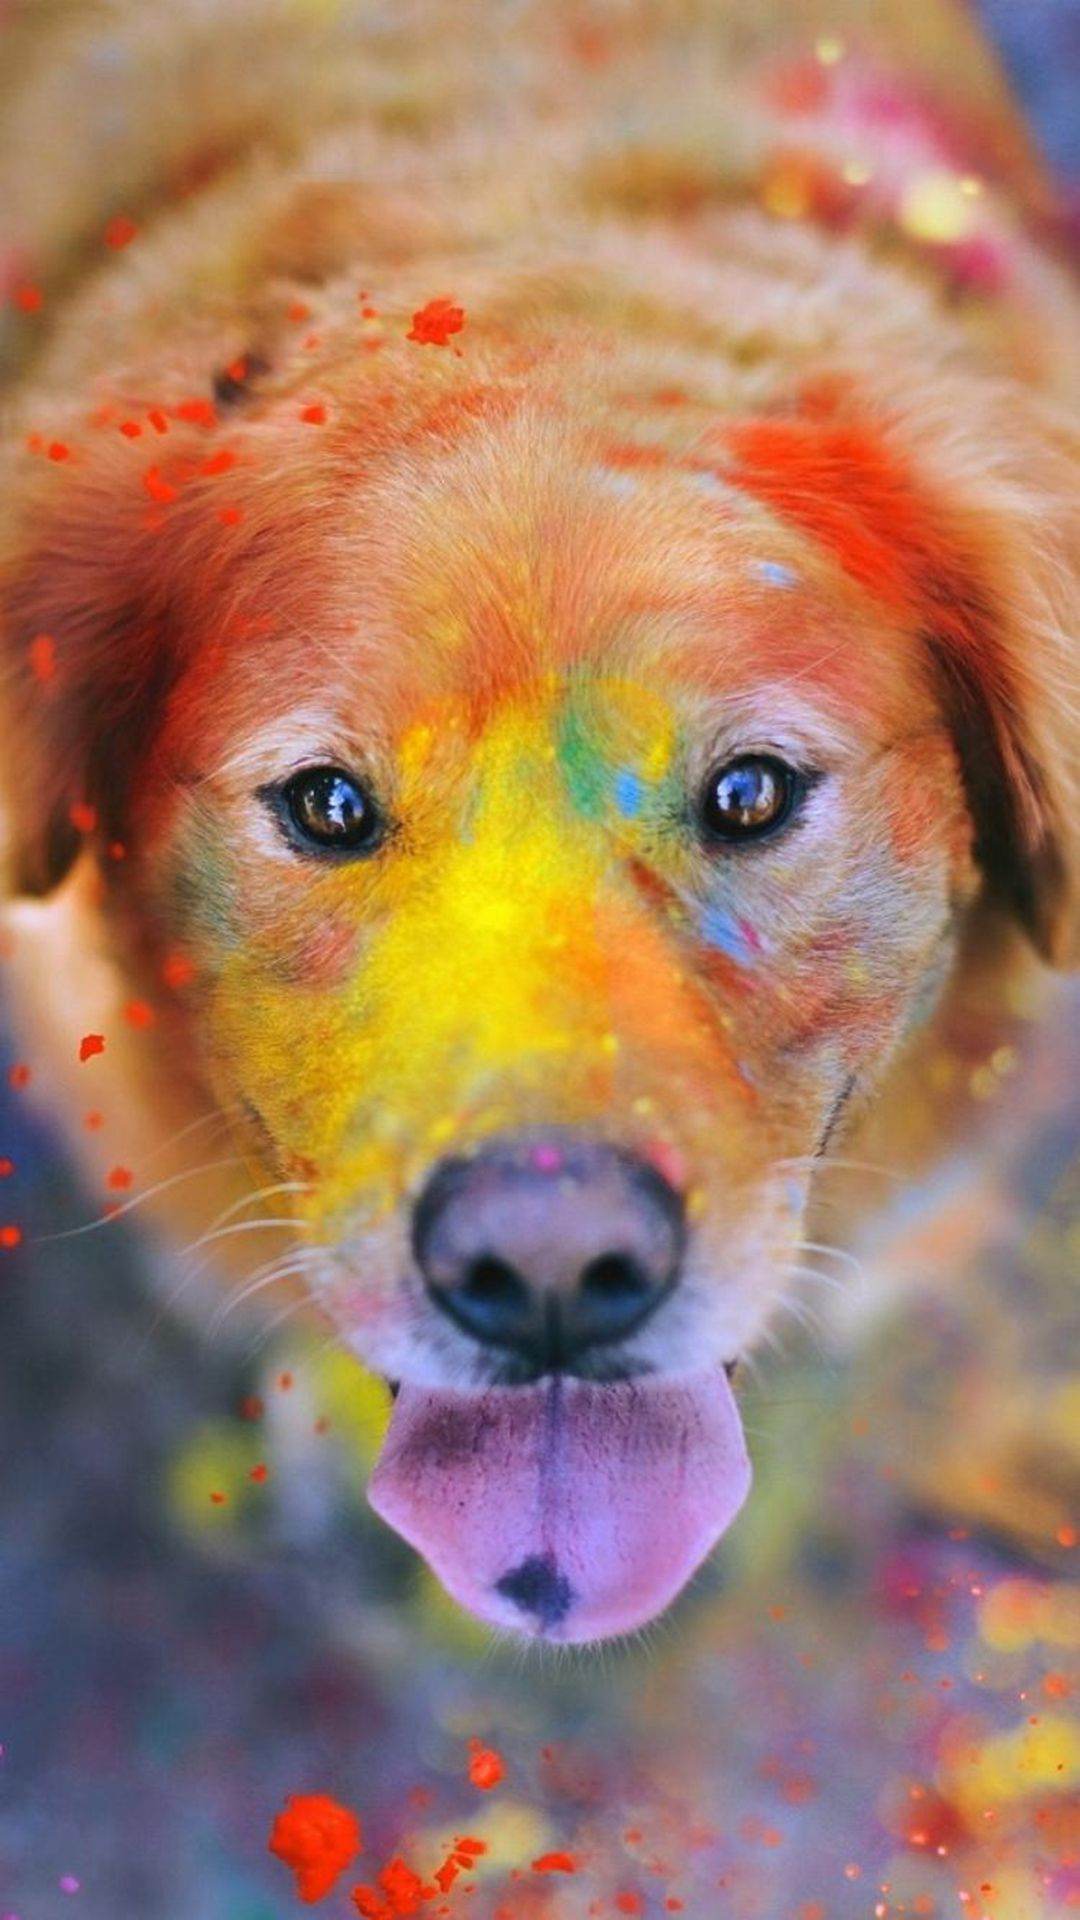 Colorful Paint Giant Dog Animal Iphone 6 Plus Wallpaper Iphone